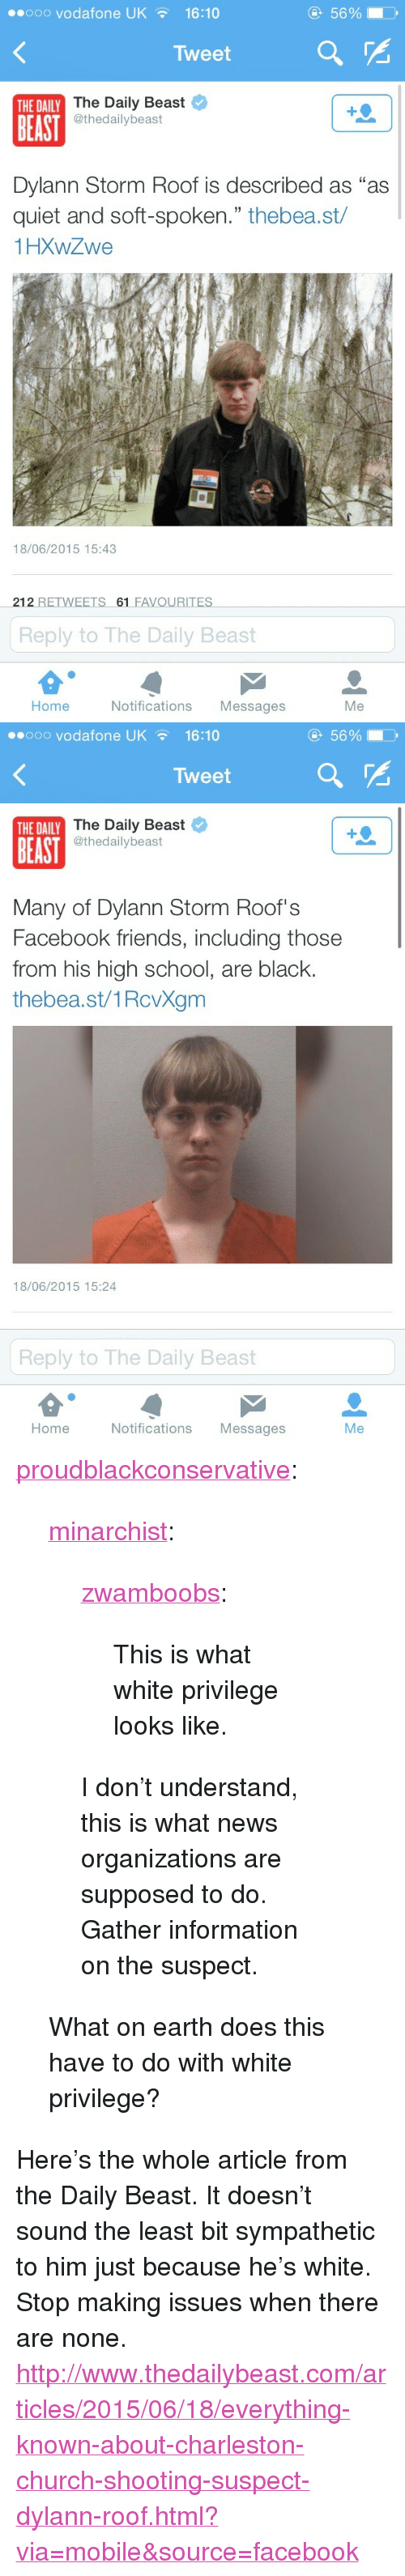 "Church, Facebook, and Friends: eooo vodafone UK16:10  5690  Tweet  The Daily Beast  @thedailybeast  THE DAILY  BEAST  Dylann Storm Roof is described as ""as  quiet and soft-spoken."" thebea.st/  1HXWZwe  18/06/2015 15:43  212 RETWEETS 61 FAVOURITES  Reply to The Daily Beast  Home  Notifications Messages  Me   ..ooo vodafone UK  16:10  5690  Tweet  The Daily Beast  @thedailybeast  THE DAILY  BEAST  Many of Dylann Storm Roof's  Facebook friends, including those  from his high school, are black.  thebea.st/1RcvXgm  18/06/2015 15:24  Reply to The Daily Beast  Home  Notifications Messages  Me <p><a class=""tumblr_blog"" href=""http://proudblackconservative.tumblr.com/post/121848653839/minarchist-zwamboobs-this-is-what-white"">proudblackconservative</a>:</p>  <blockquote><p><a class=""tumblr_blog"" href=""http://minarchist.tumblr.com/post/121847656894/zwamboobs-this-is-what-white-privilege-looks"">minarchist</a>:</p>  <blockquote><p><a class=""tumblr_blog"" href=""http://zwamboobs.tumblr.com/post/121841004836/this-is-what-white-privilege-looks-like"">zwamboobs</a>:</p>  <blockquote><p>This is what white privilege looks like.</p></blockquote>  <p>I don't understand, this is what news organizations are supposed to do. Gather information on the suspect.</p></blockquote>  <p>What on earth does this have to do with white privilege?<br/></p></blockquote>  <p>Here's the whole article from the Daily Beast. It doesn't sound the least bit sympathetic to him just because he's white. Stop making issues when there are none. <a href=""http://www.thedailybeast.com/articles/2015/06/18/everything-known-about-charleston-church-shooting-suspect-dylann-roof.html?via=mobile&source=facebook"">http://www.thedailybeast.com/articles/2015/06/18/everything-known-about-charleston-church-shooting-suspect-dylann-roof.html?via=mobile&source=facebook</a><br/></p>"